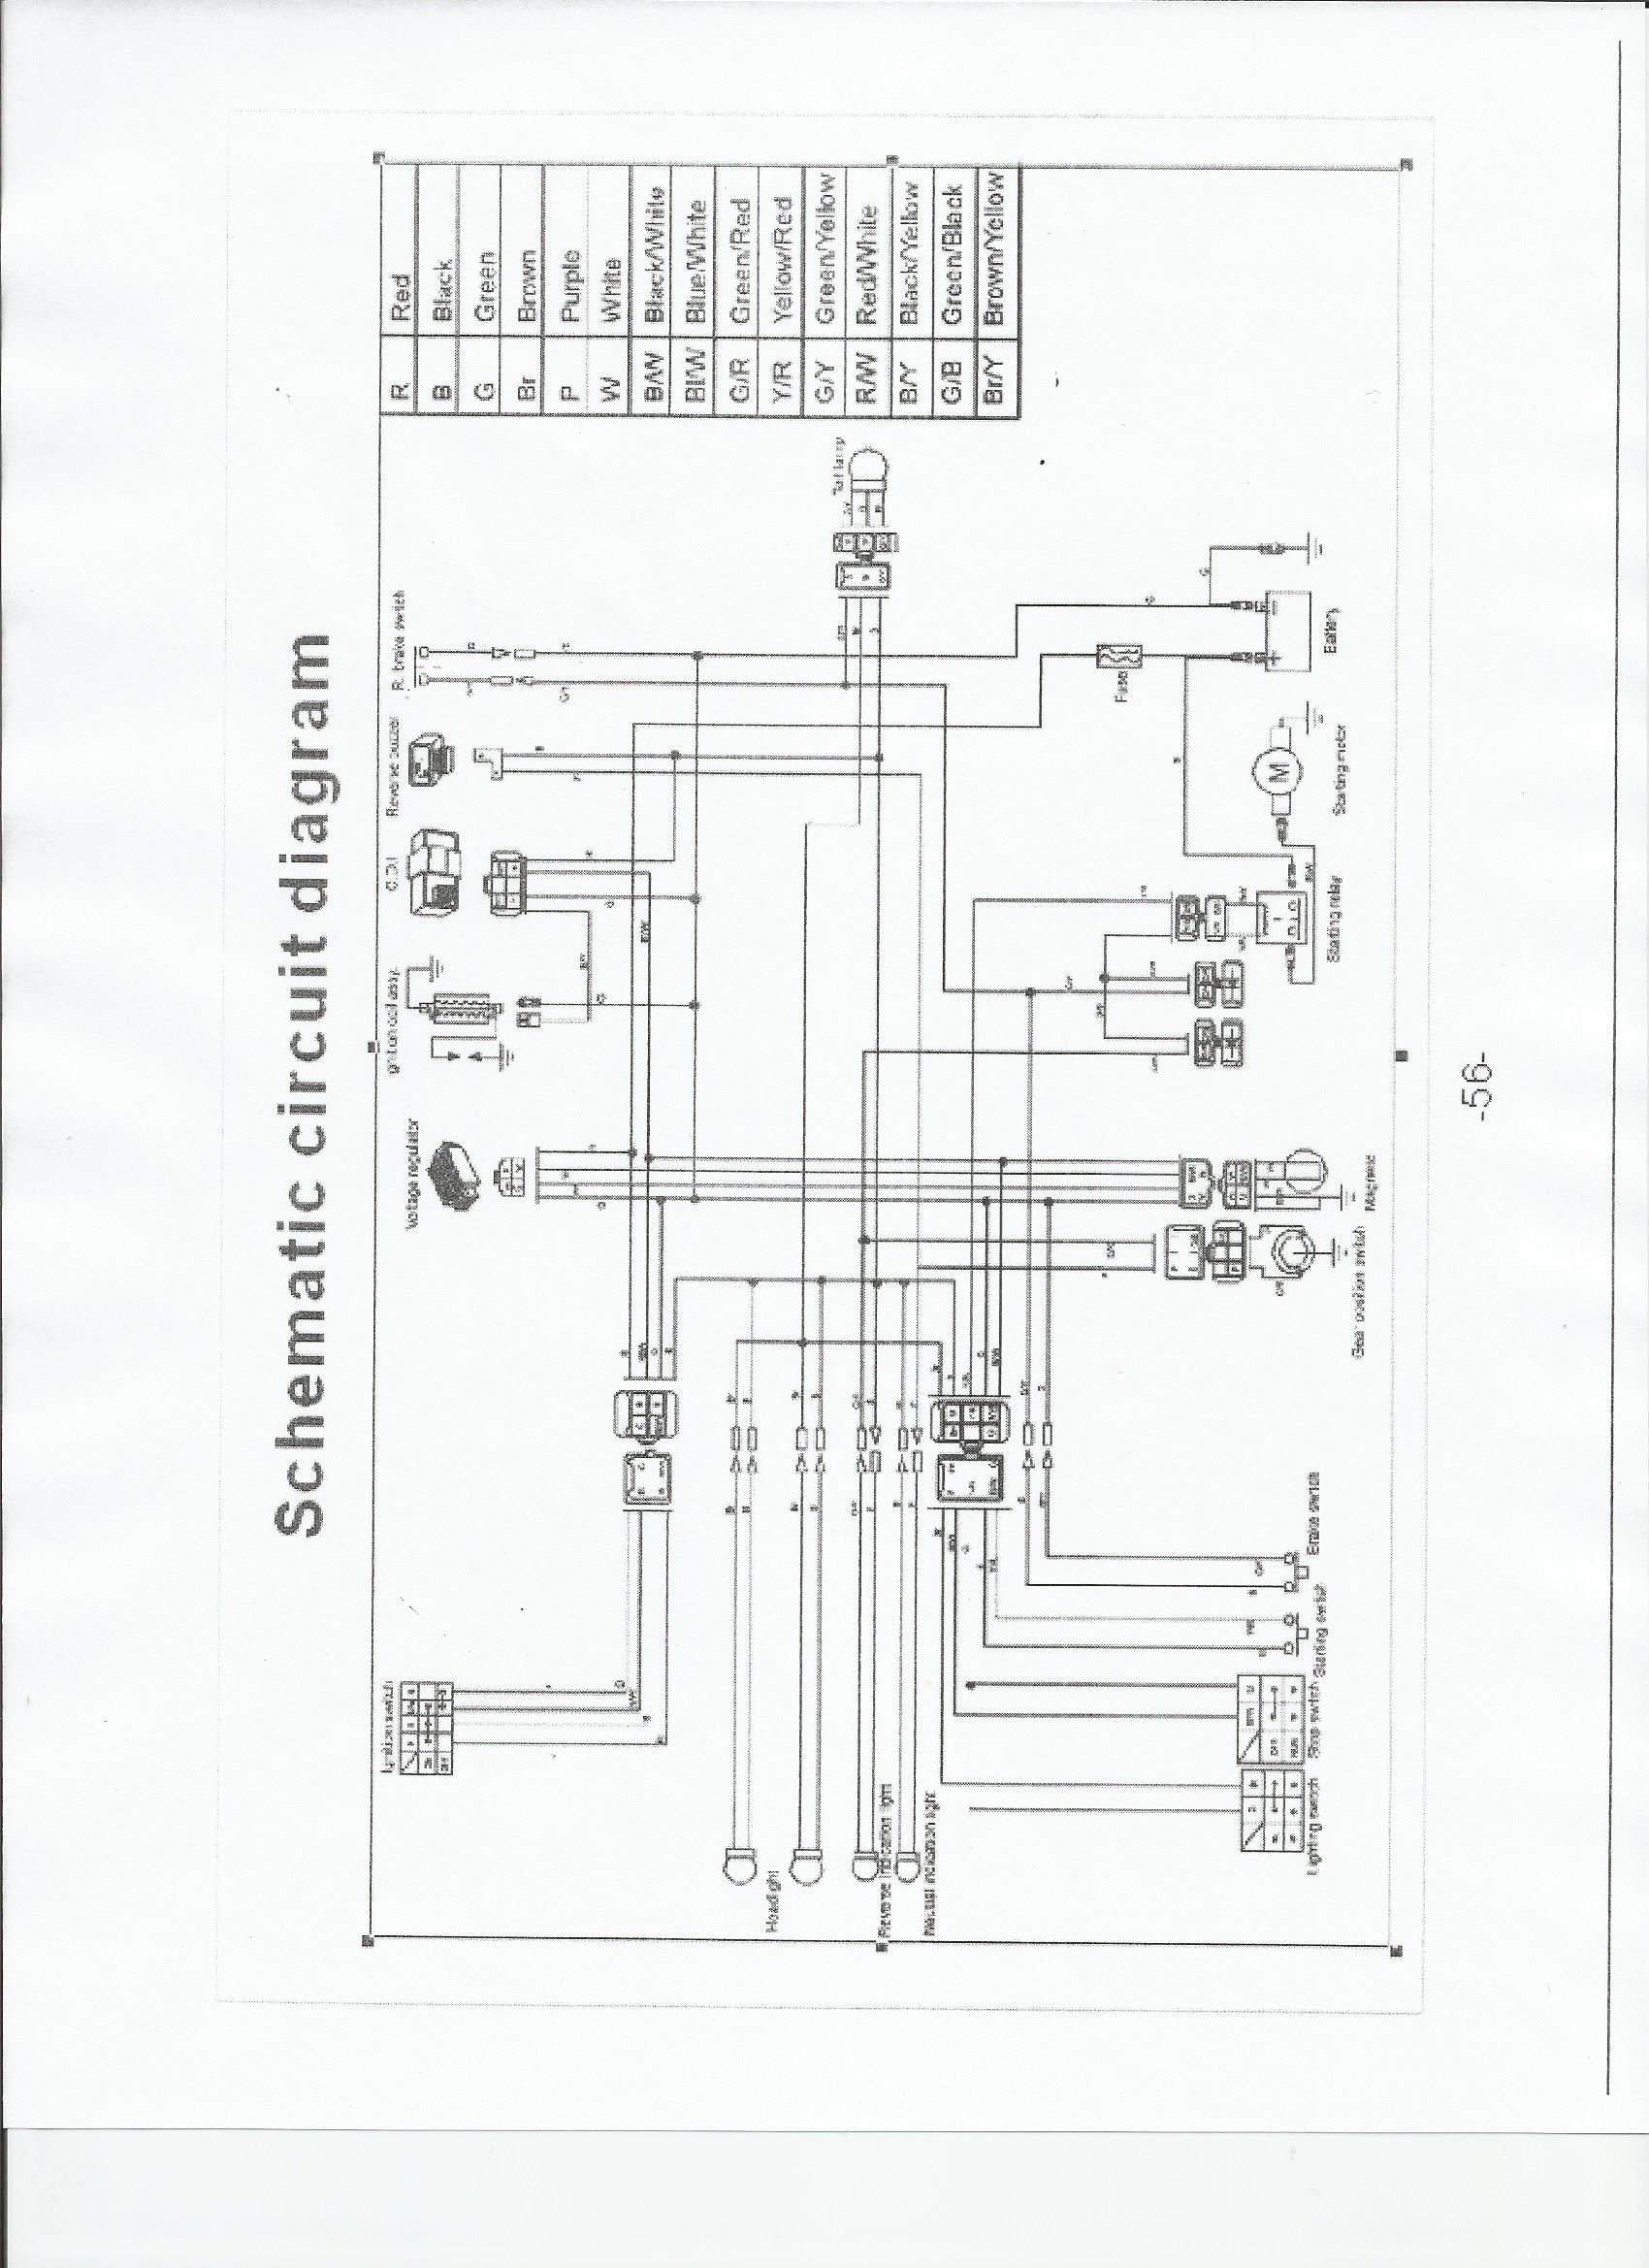 taotao mini and youth atv wiring schematic familygokarts support